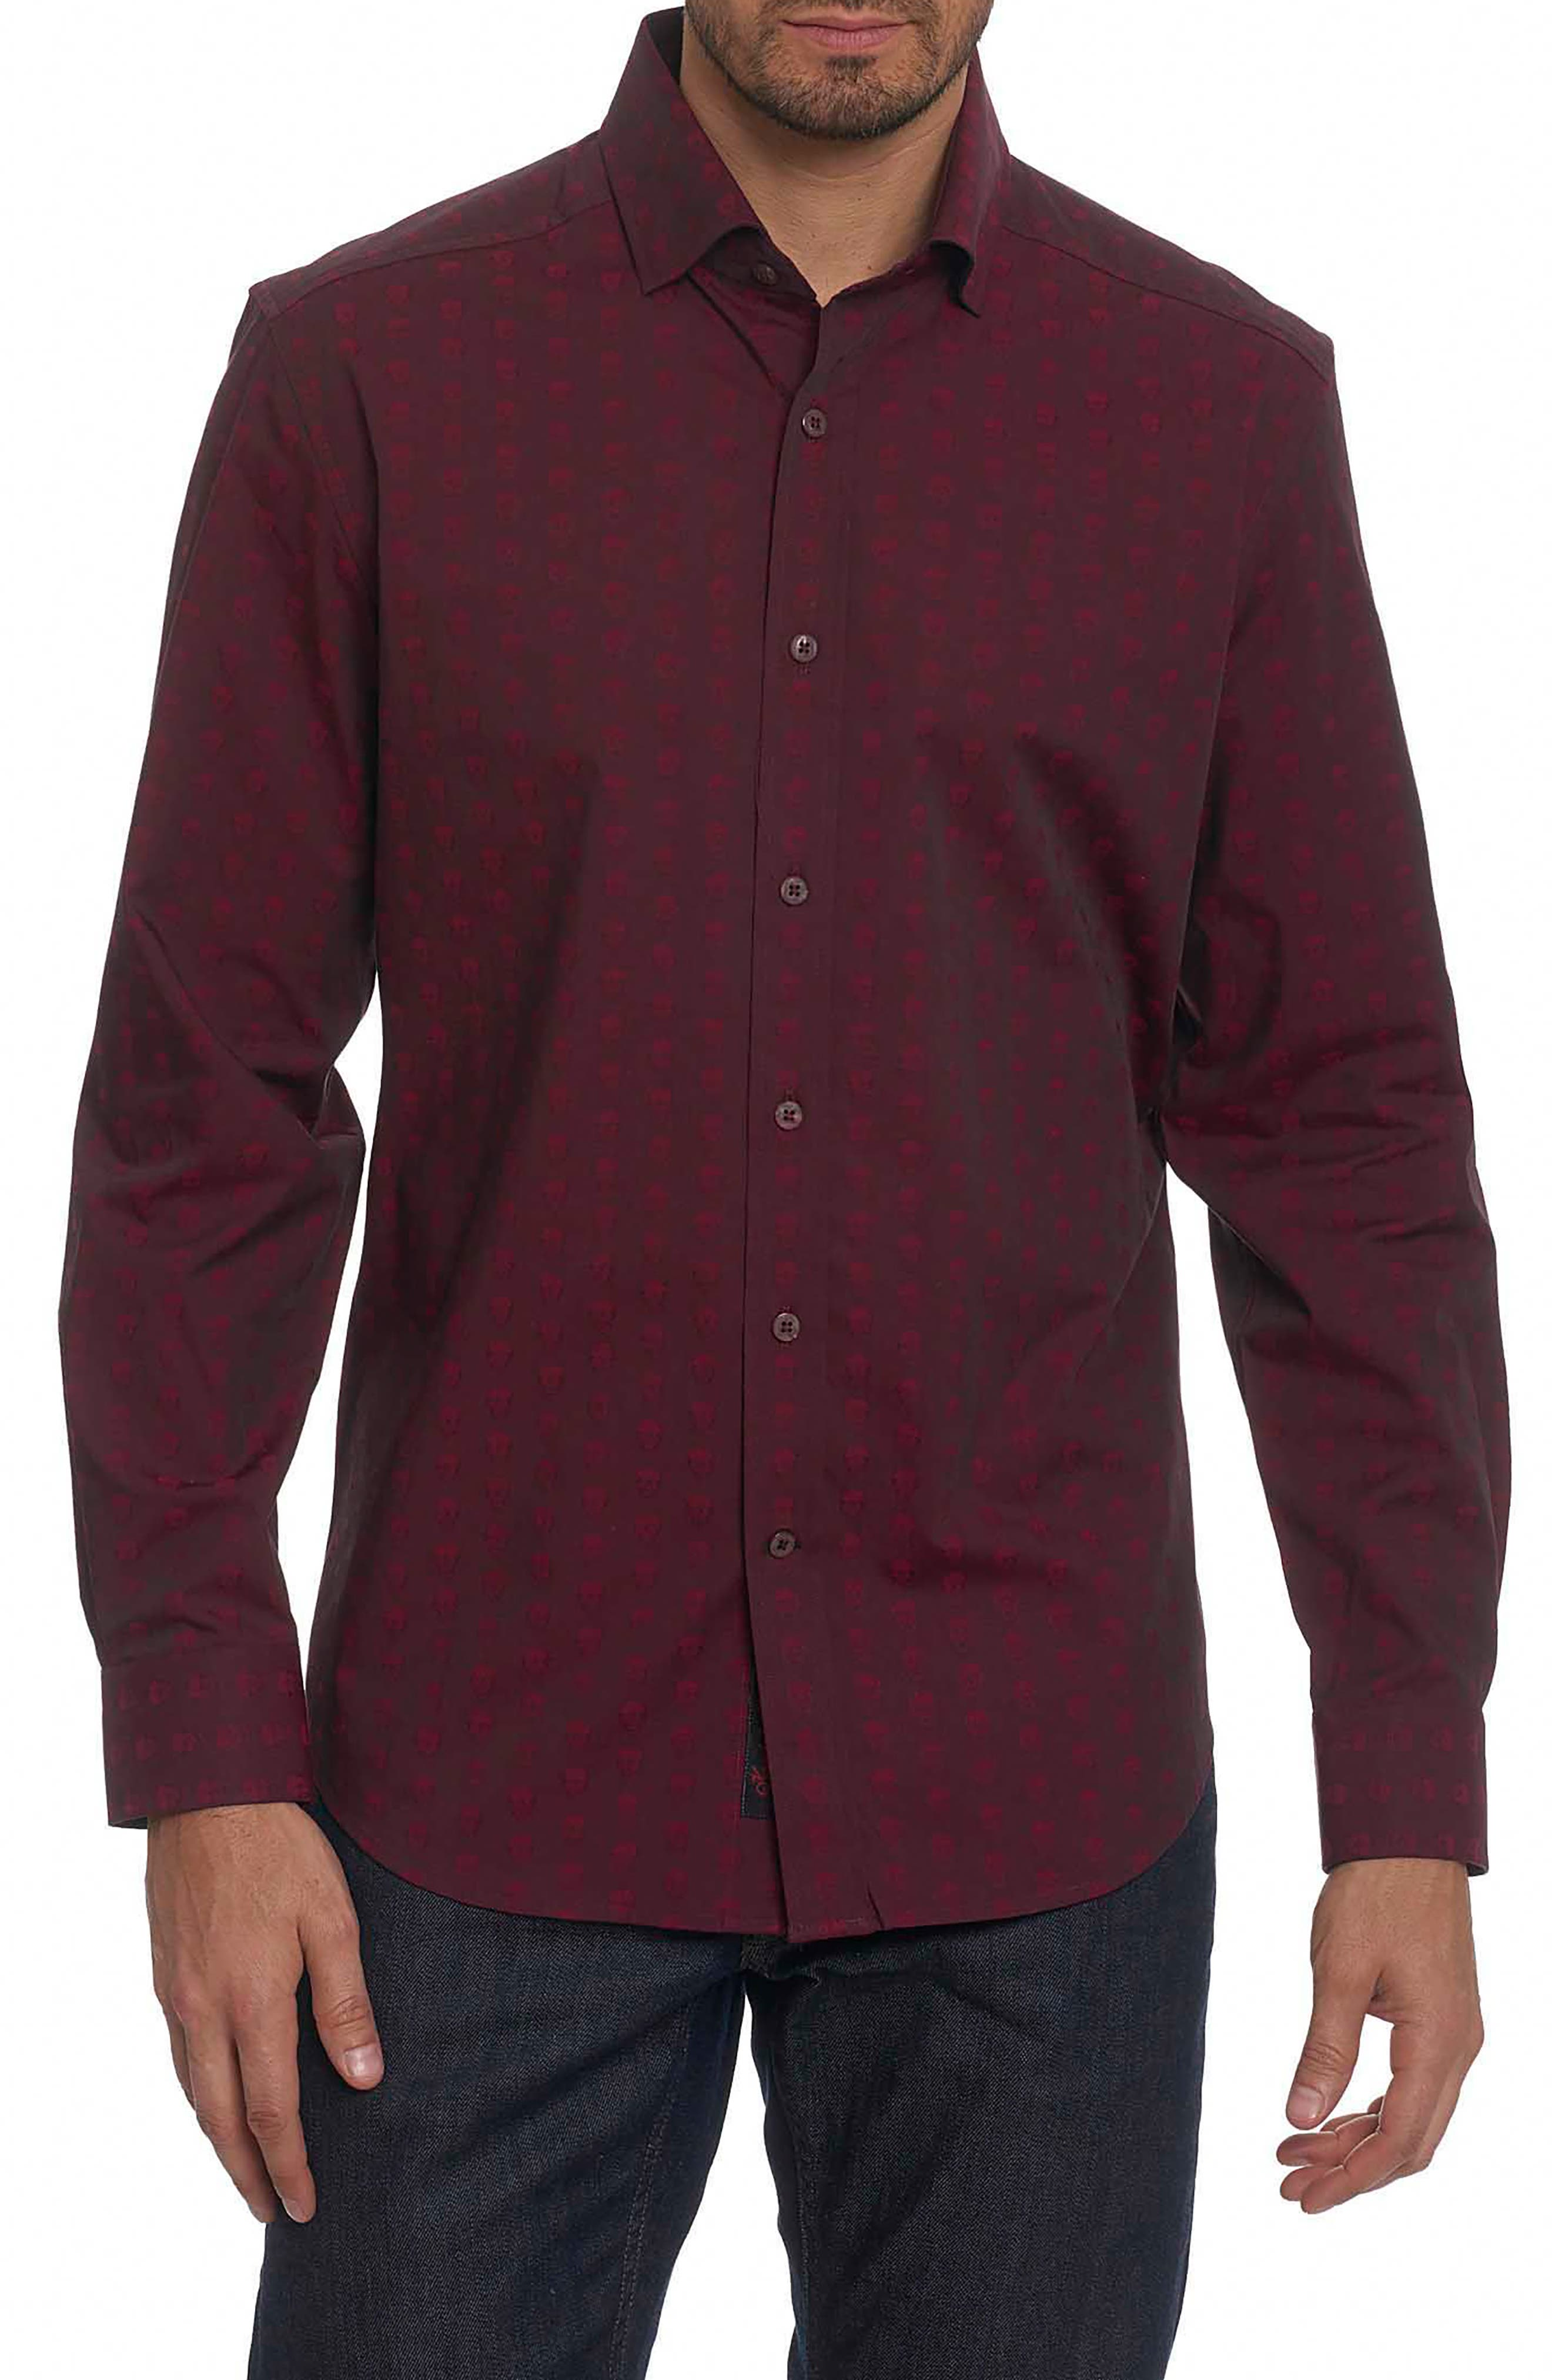 Deven Tailored Fit Sport Shirt,                         Main,                         color, Red